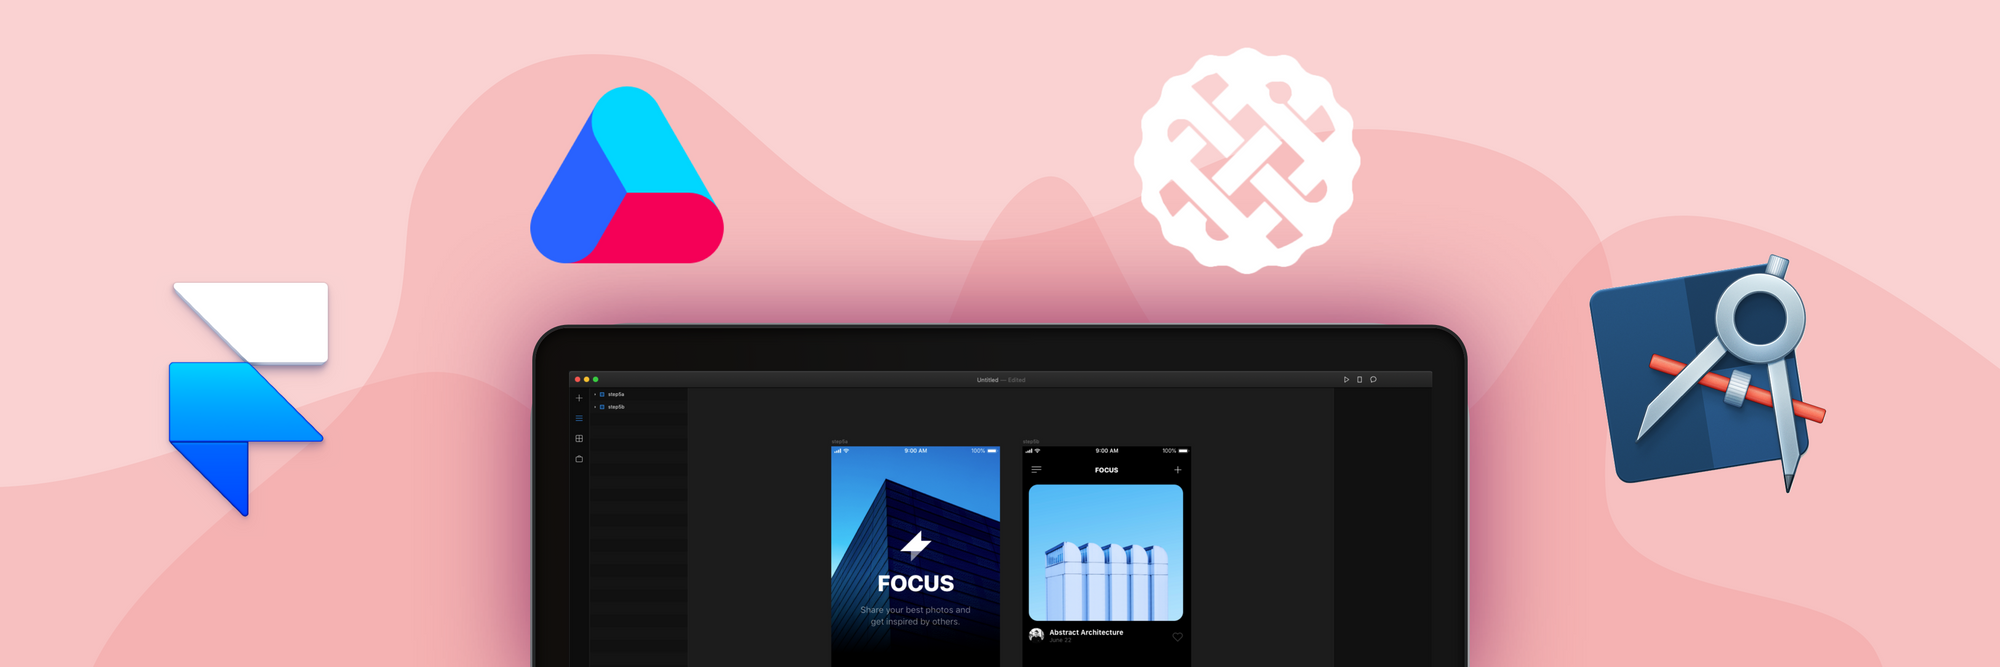 Framer X vs. ProtoPie vs. Flinto vs. Atomic: which one to choose?